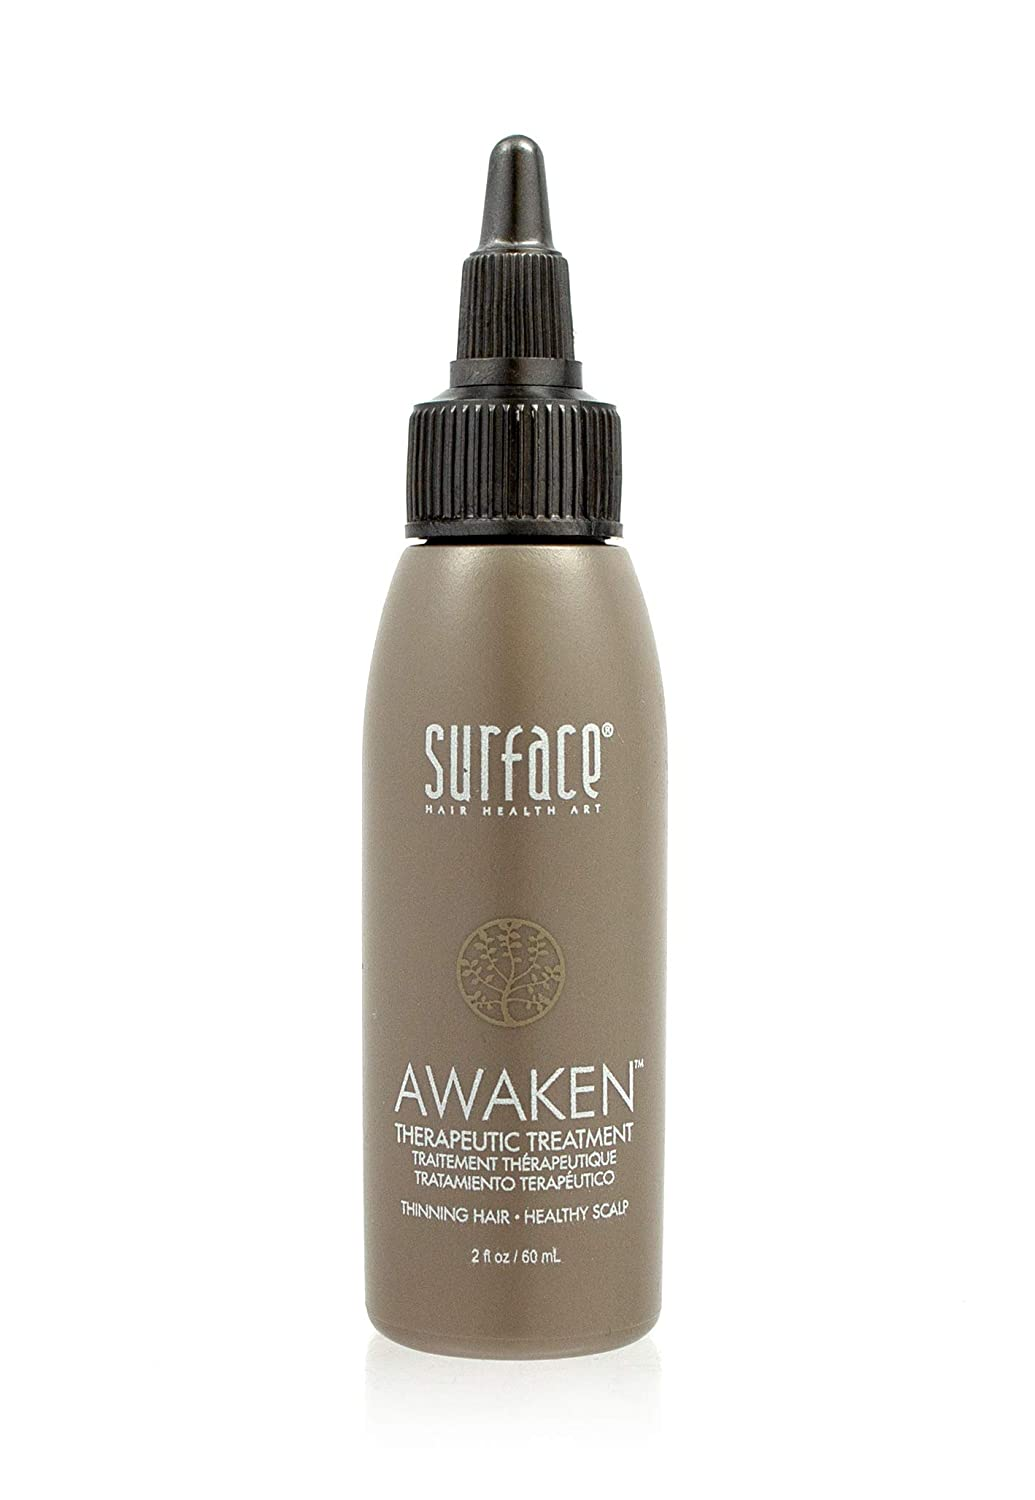 Surface Hair Awaken Therapeutic Treatment, 2 Fl Oz: Premium Beauty